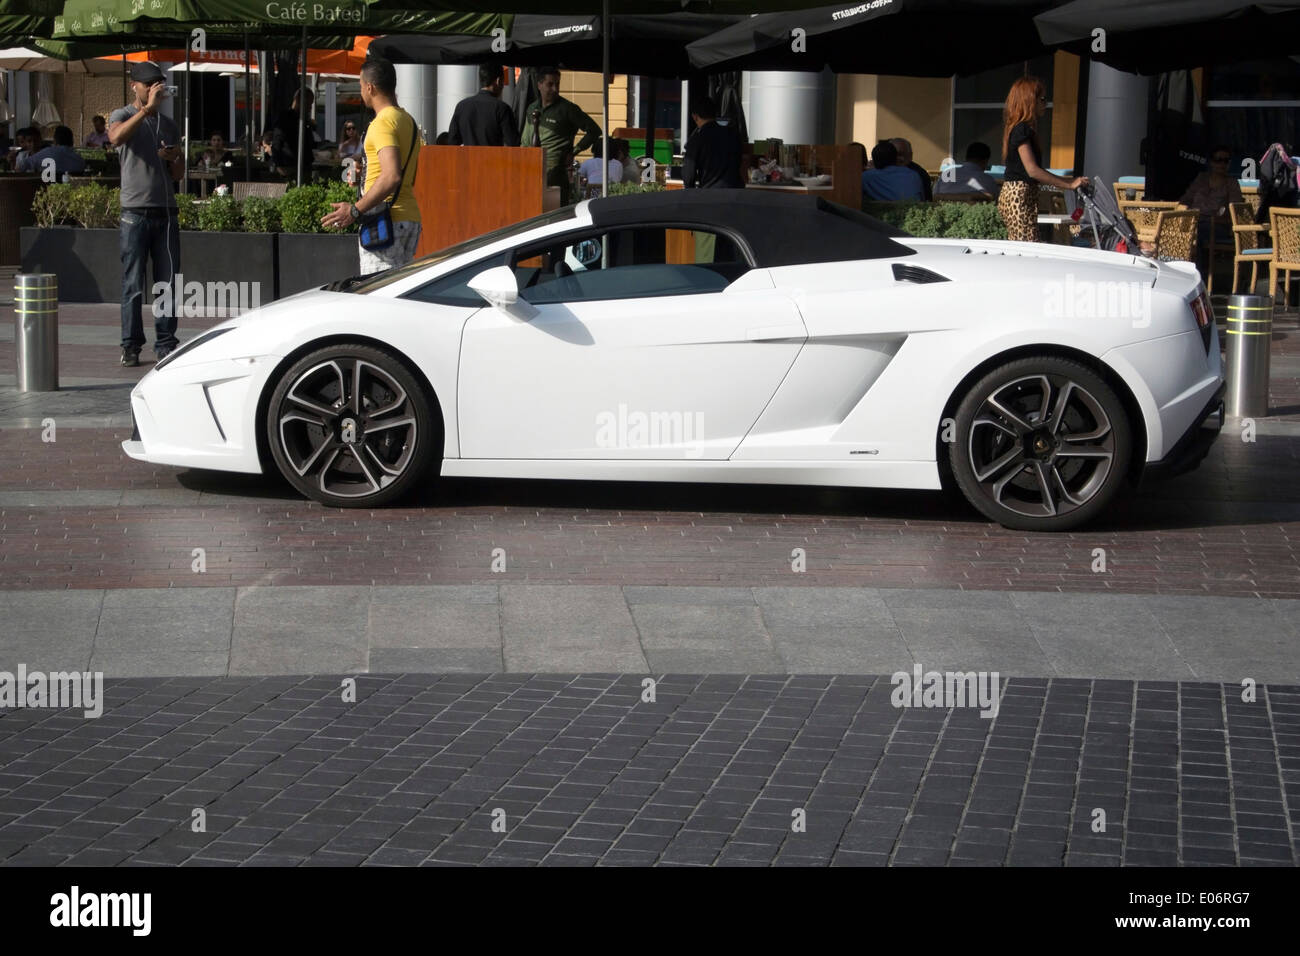 Brilliant White Lamborghini Gallardo LP560   4 Spyder   Stock Image